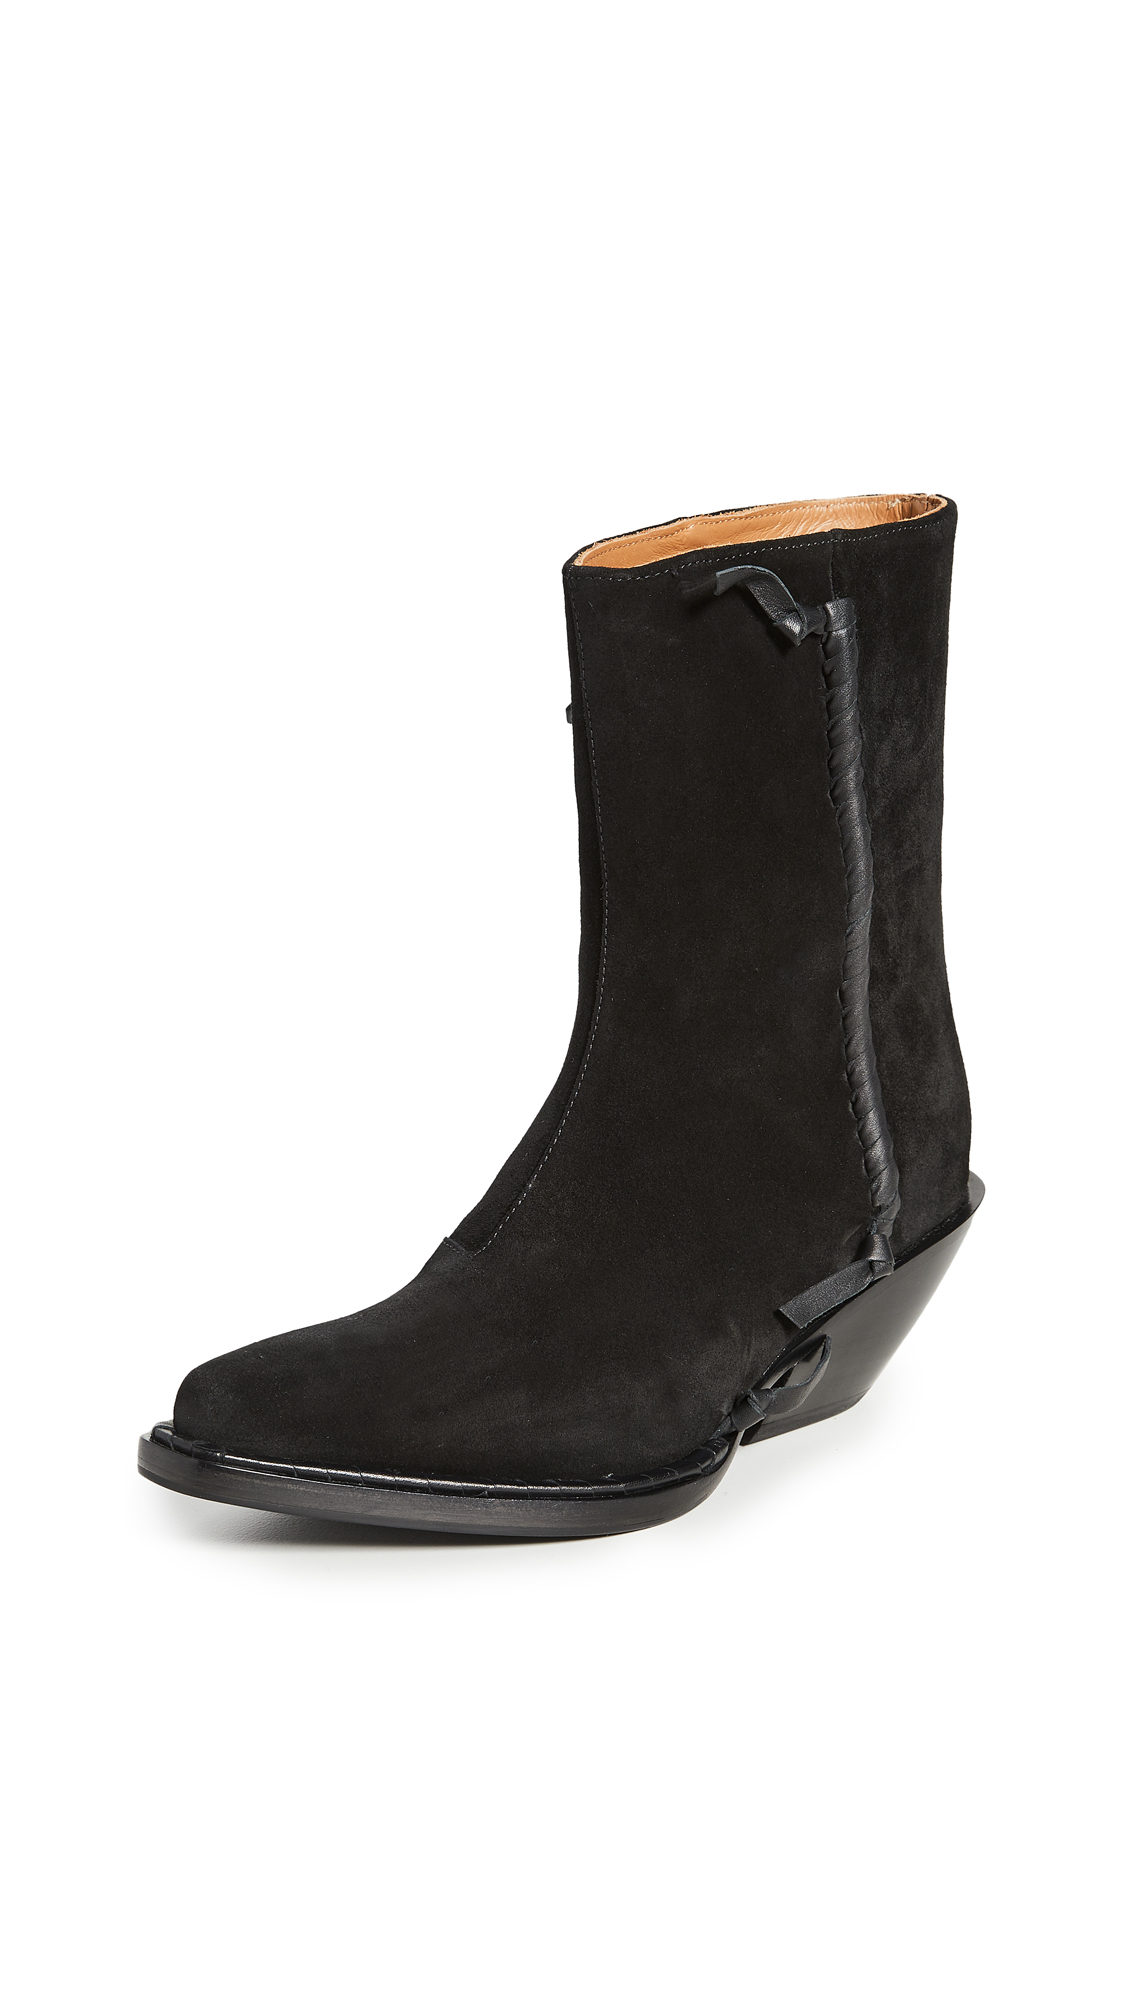 Acne Studios Suede Ankle Booties - 50% Off Sale